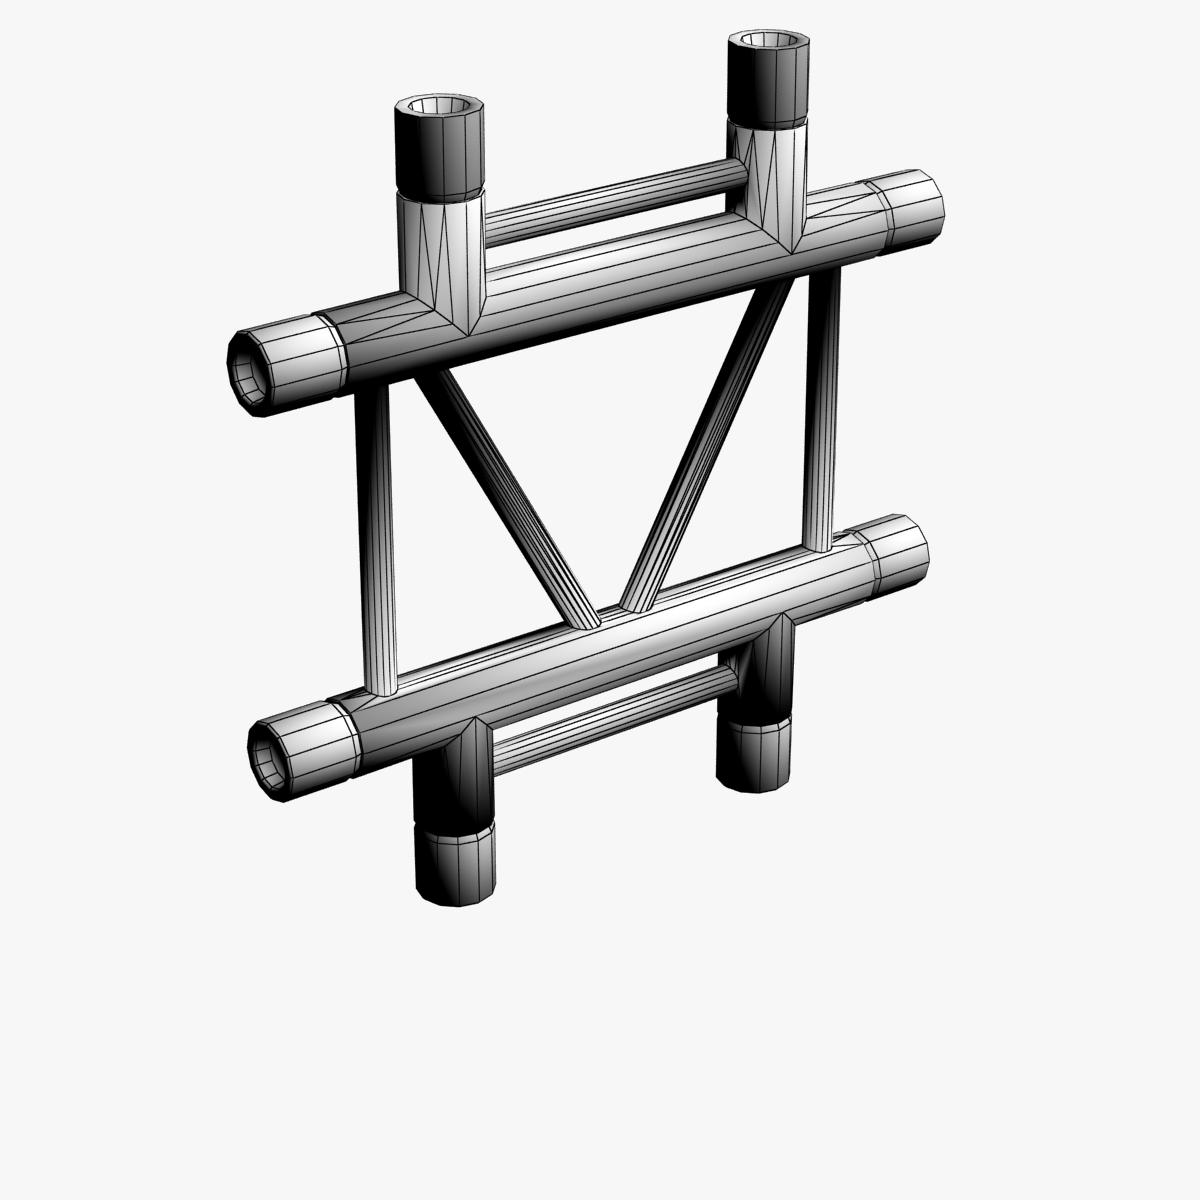 beam trusses (collection 24 modular pieces) 3d model 3ds max dxf fbx bmp blend c4d dae other obj 268744